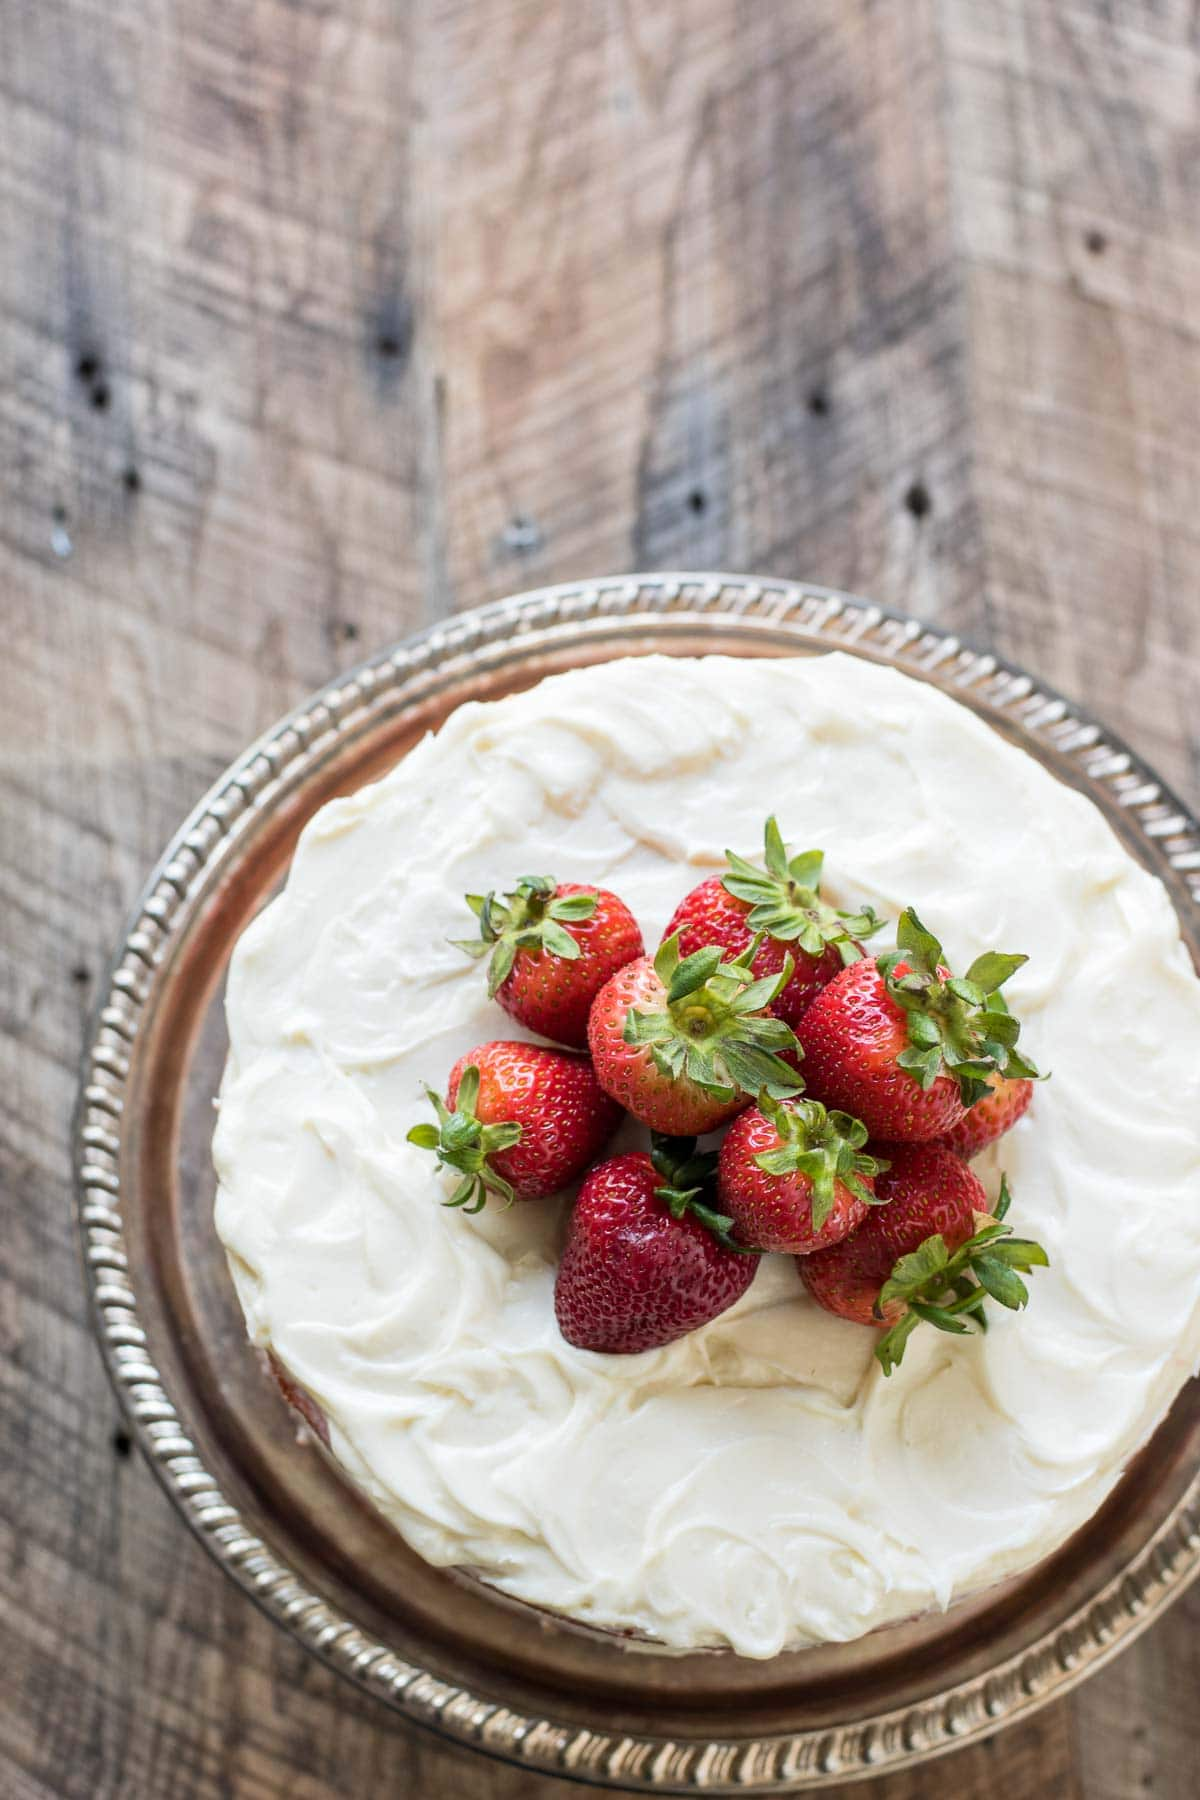 Strawberry cake frosted with cream cheese frosting and fresh strawberries